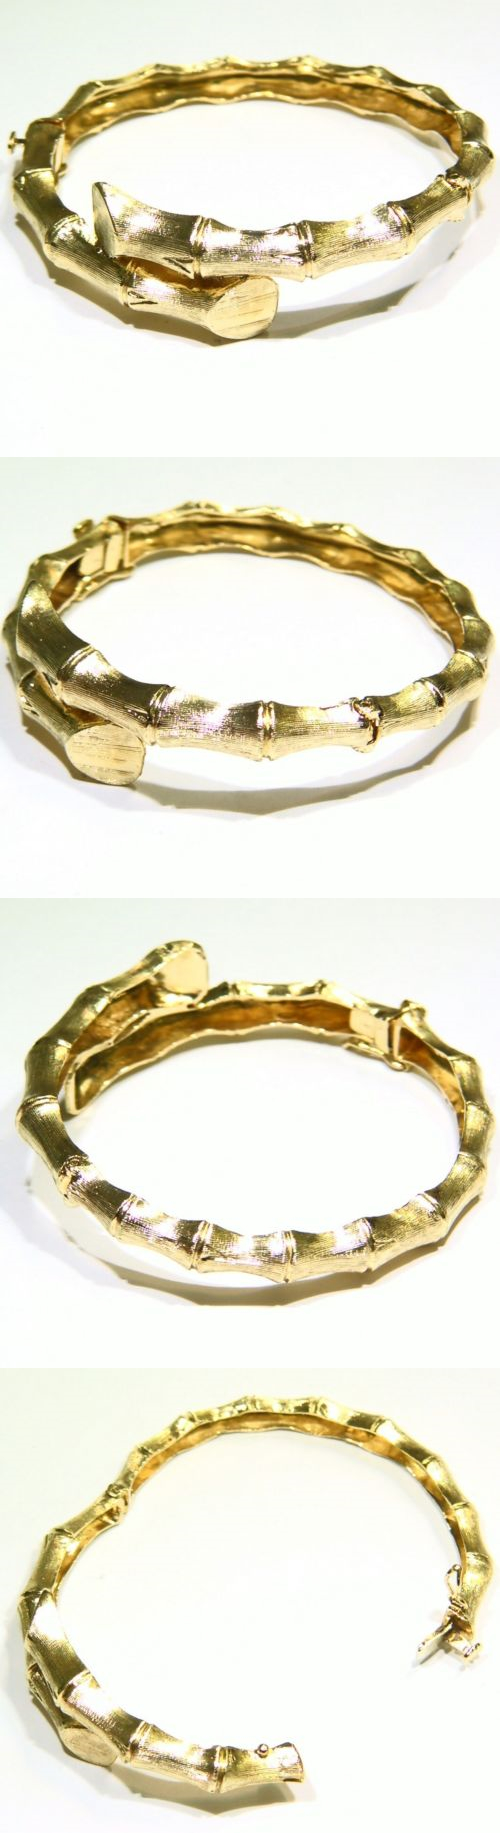 solid yellow bracelet gold bangles in bangle